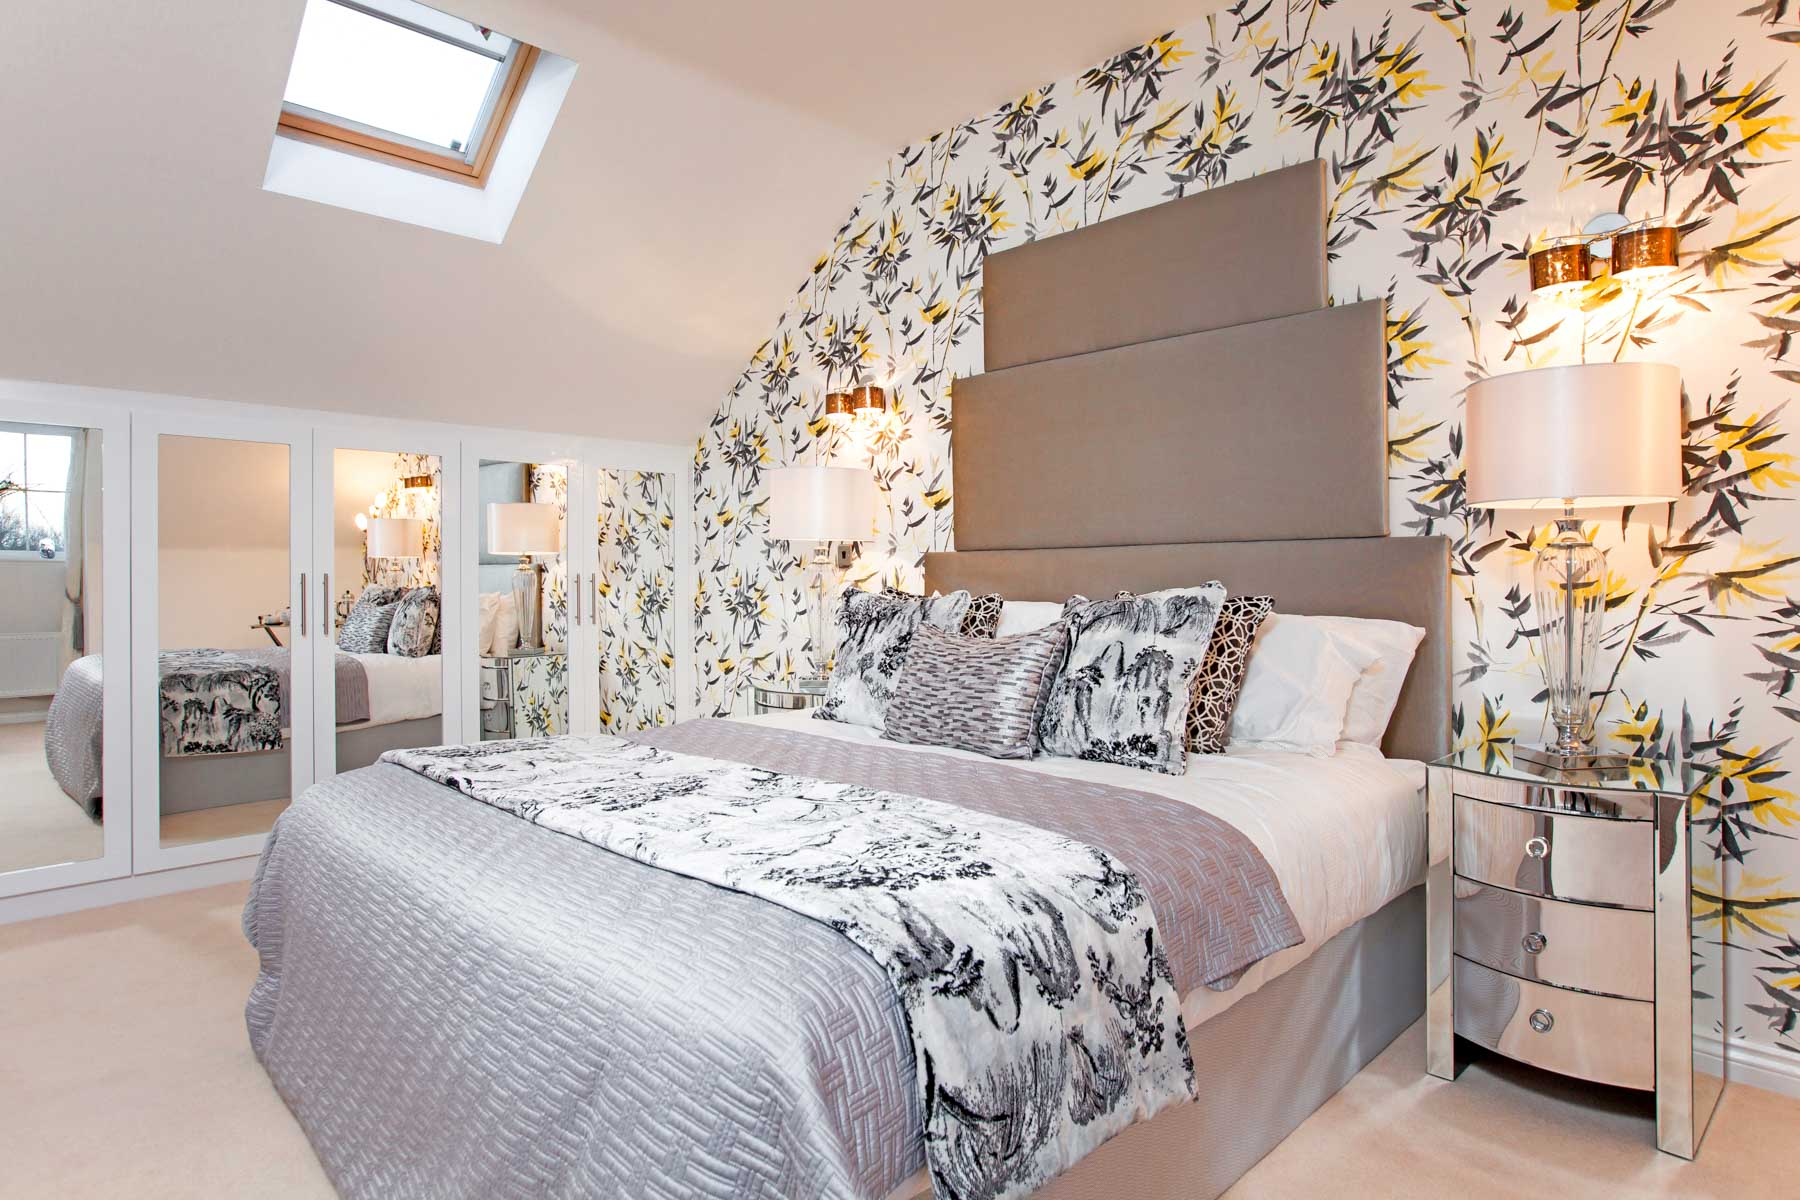 TW Exeter - Rackenford Meadow - Ashton example bedroom 2